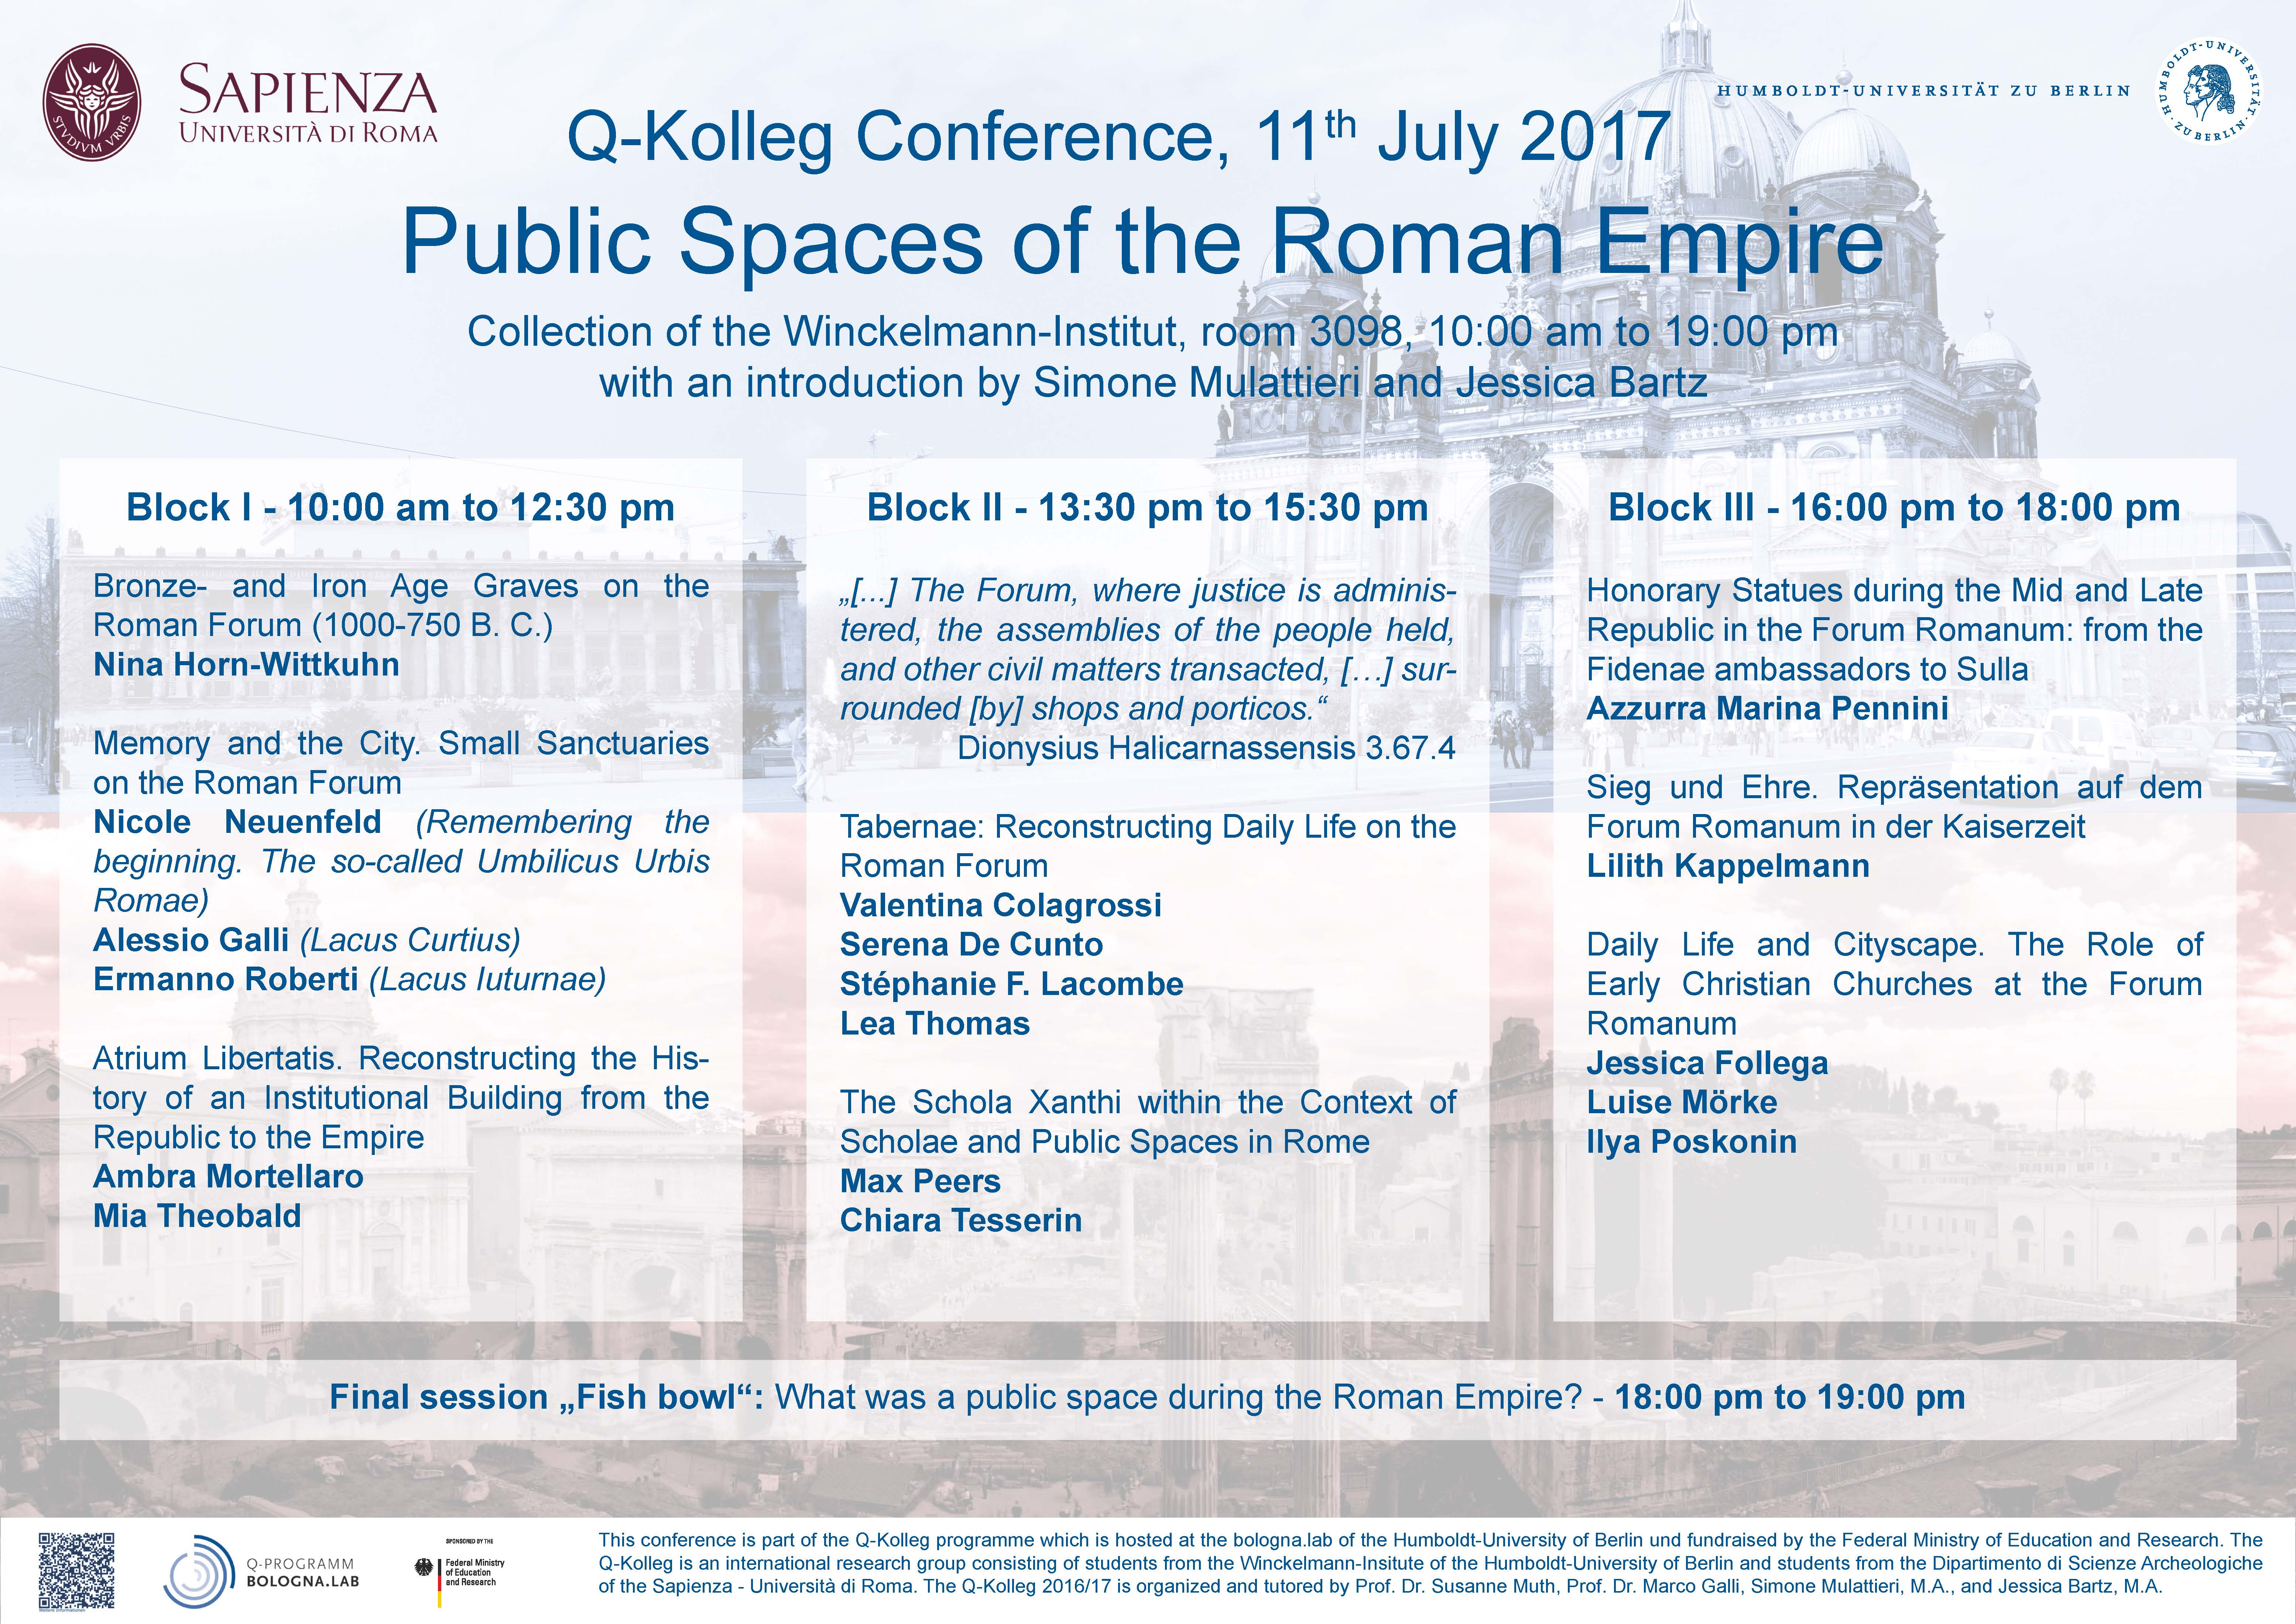 q-kolleg-conference-public-spaces-of-the-roman-empire.text.image0